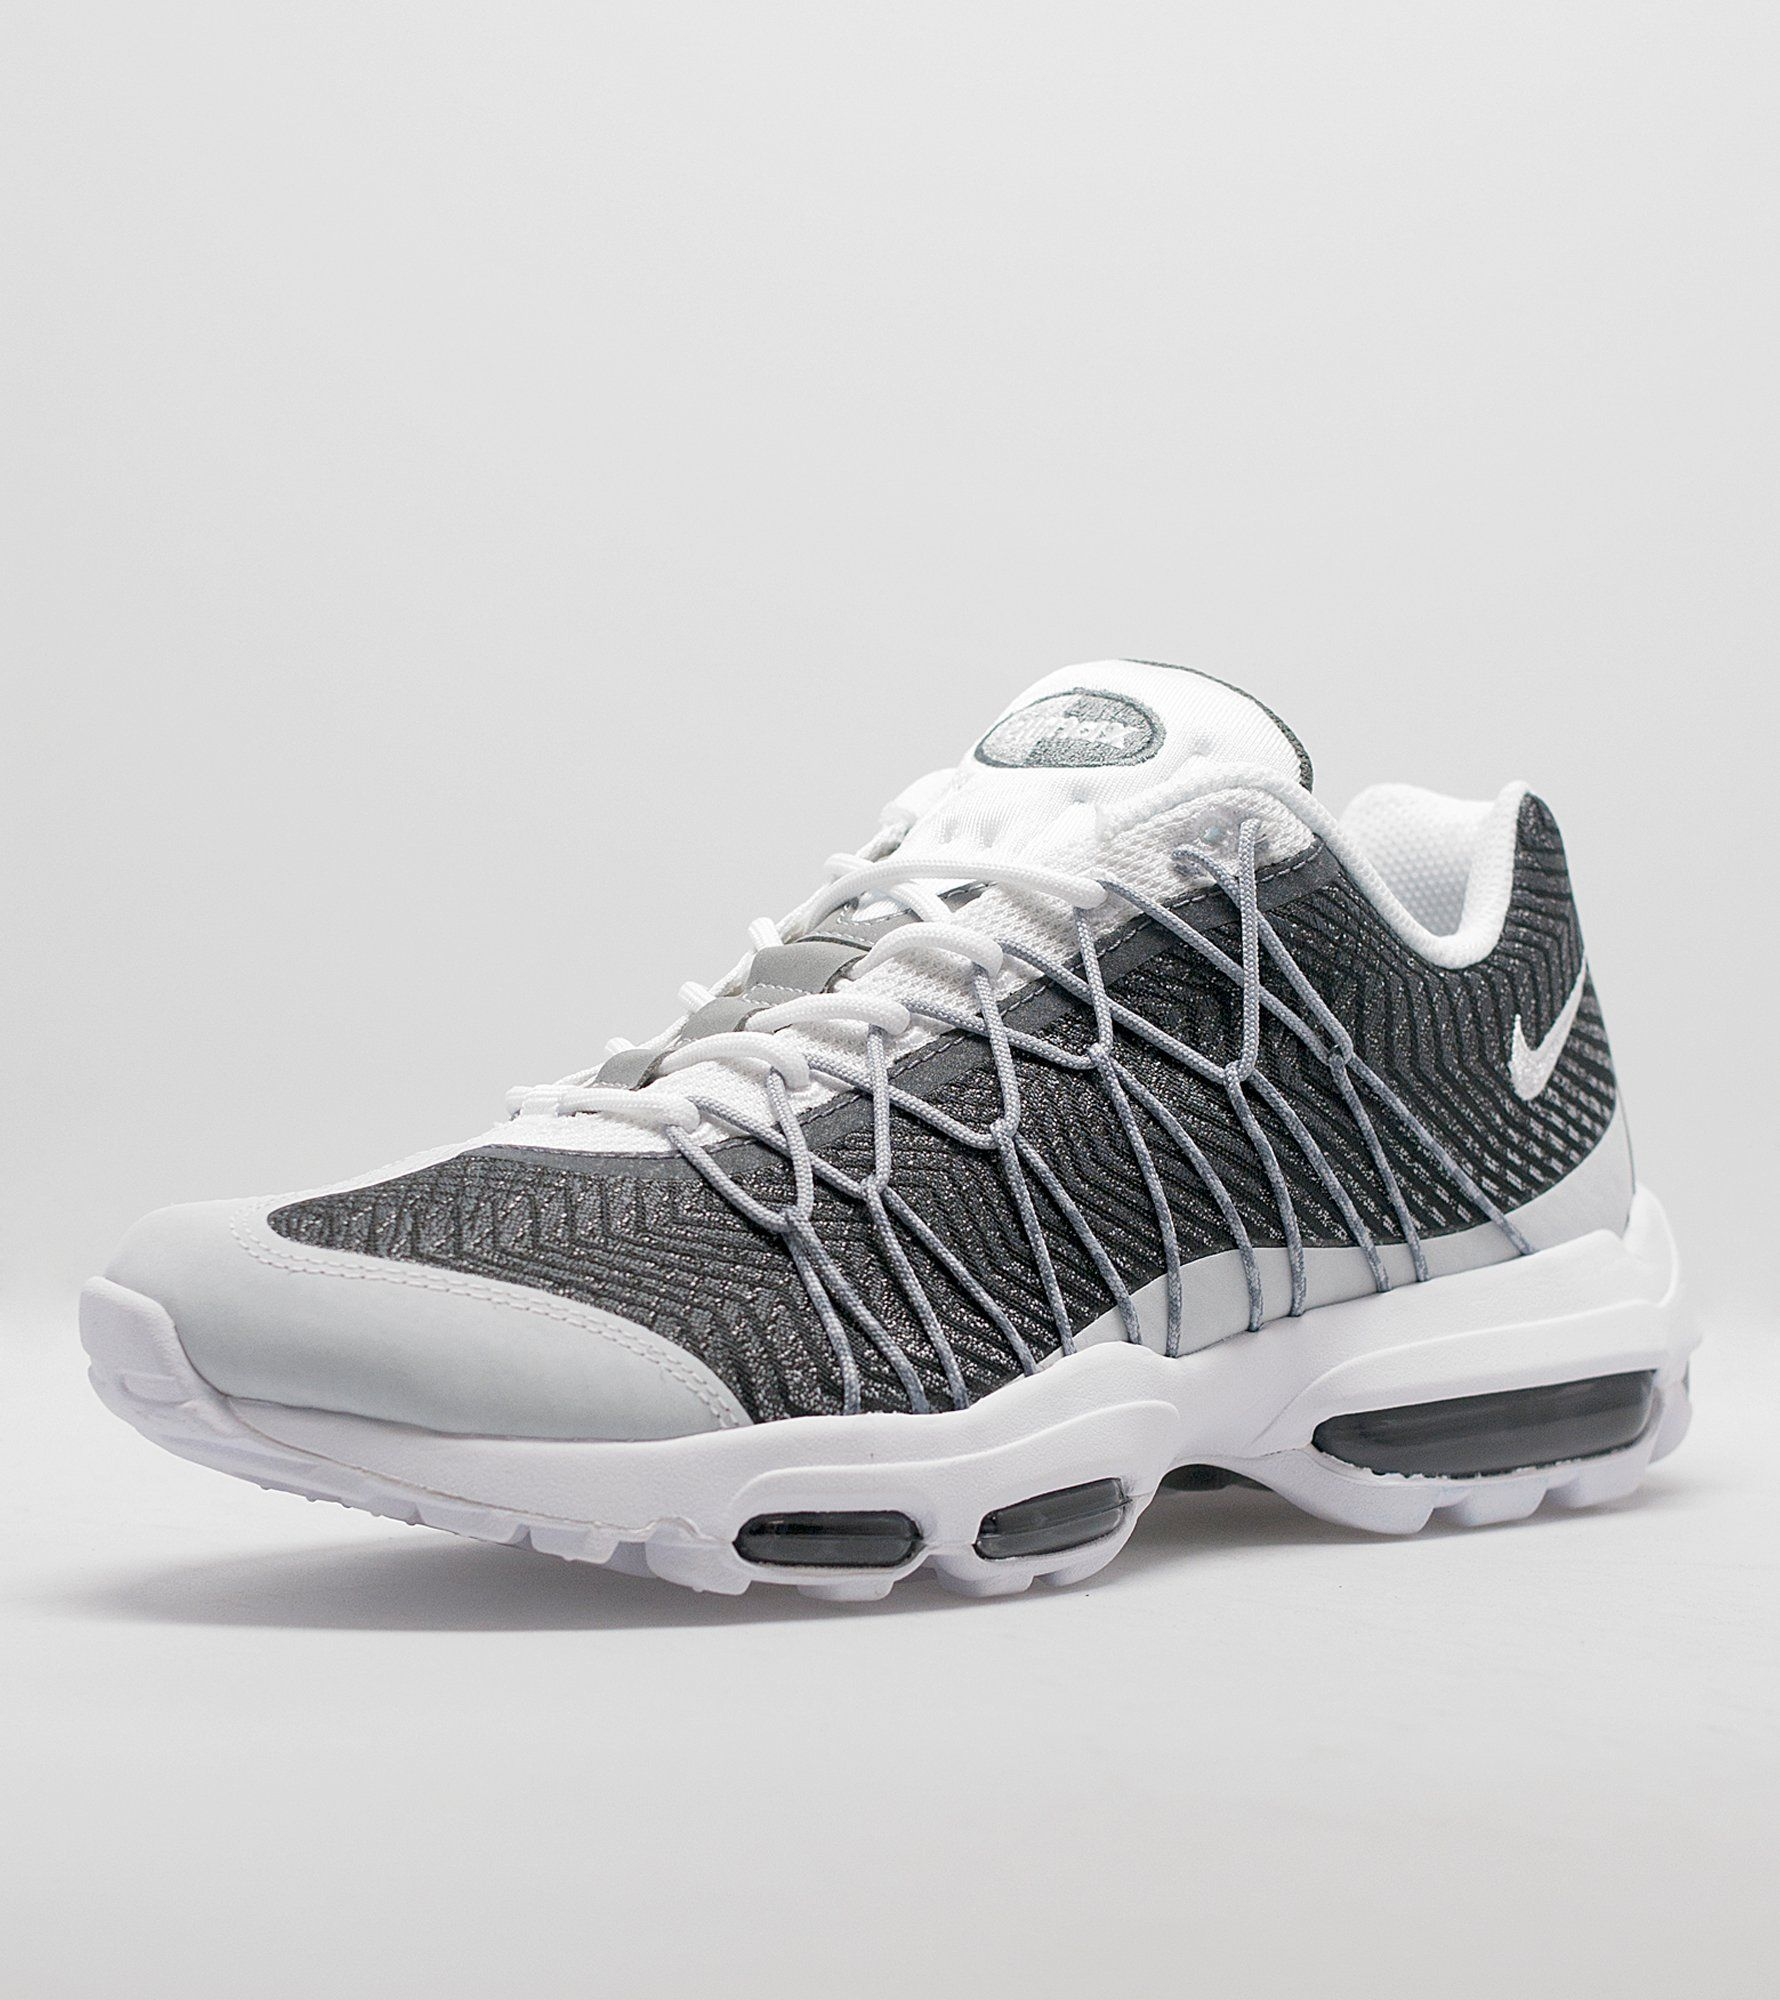 free shipping 52f36 6b7fc ... greece nike air max 95 ultra jacquard 37dbe a55d7